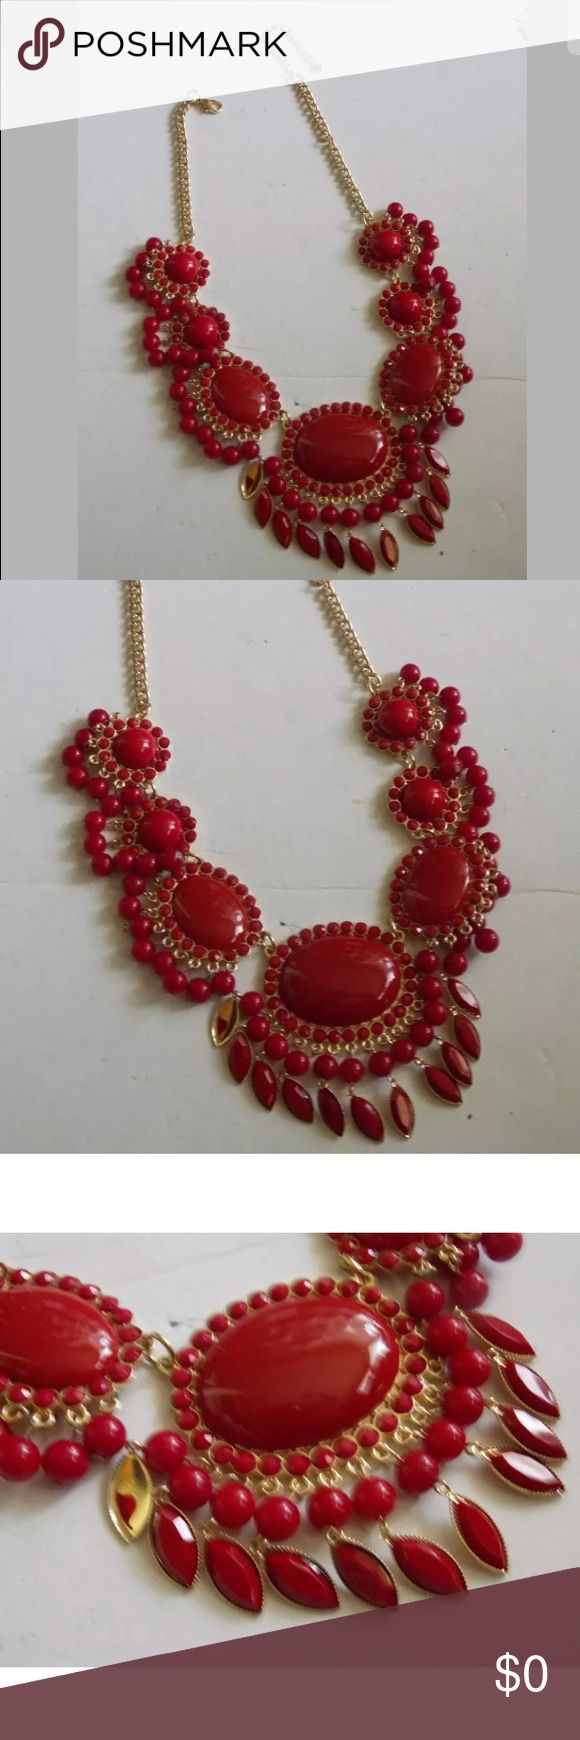 "Red Rhinestone Necklace Pretty Red rhinestone fashion necklace is apx 20"" long with gold toned metal and lobster claw clasp.  Length is adjustable. Others similar to this one available for sale in my closet.  Bundle and save💚. Open to offers alsi💚 Jewelry Necklaces"